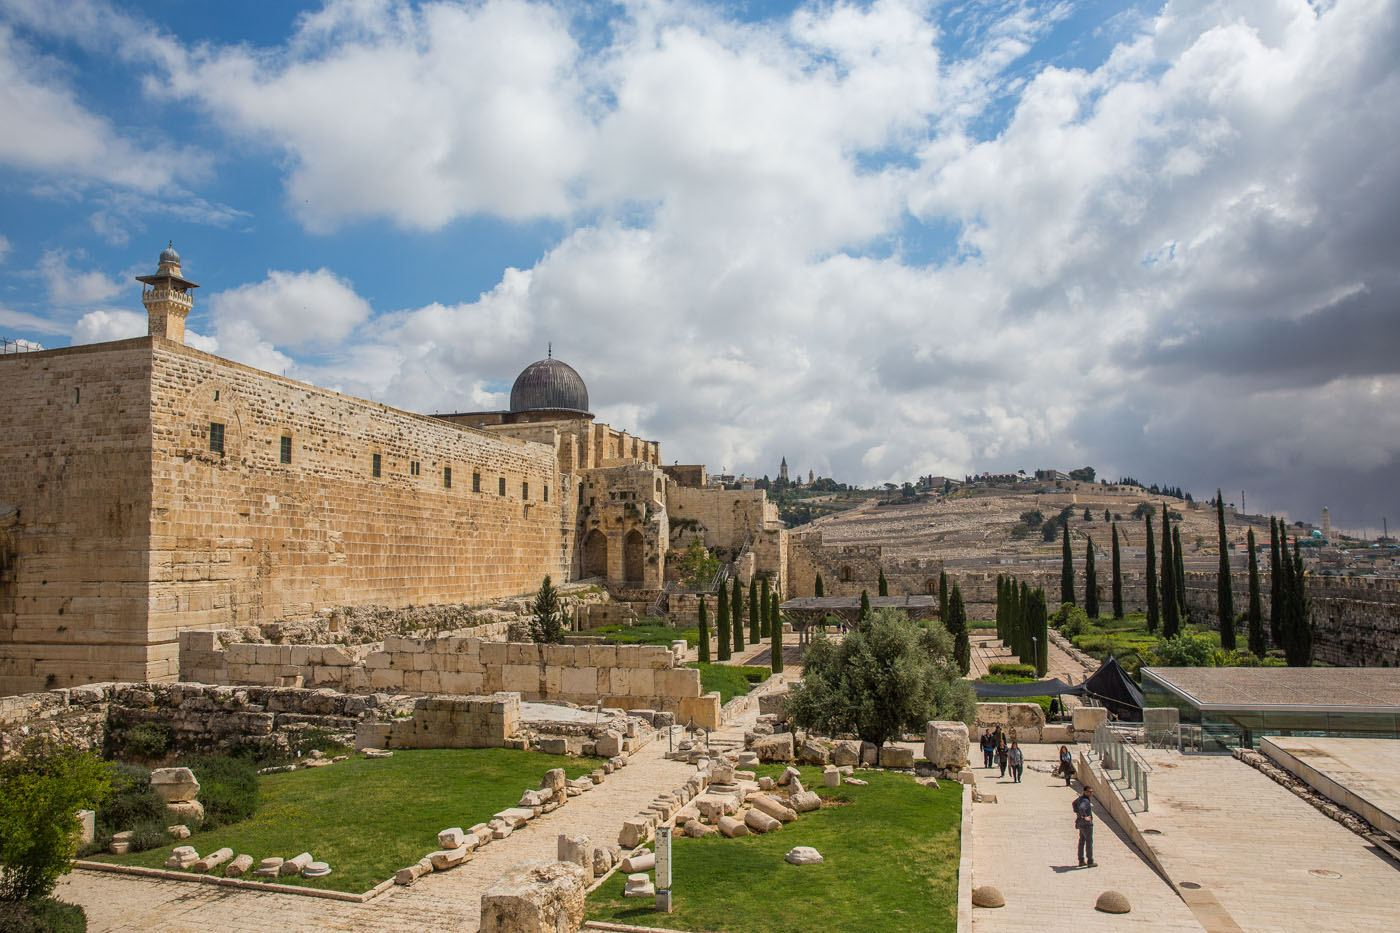 View of Jerusalem and Mount of Olives